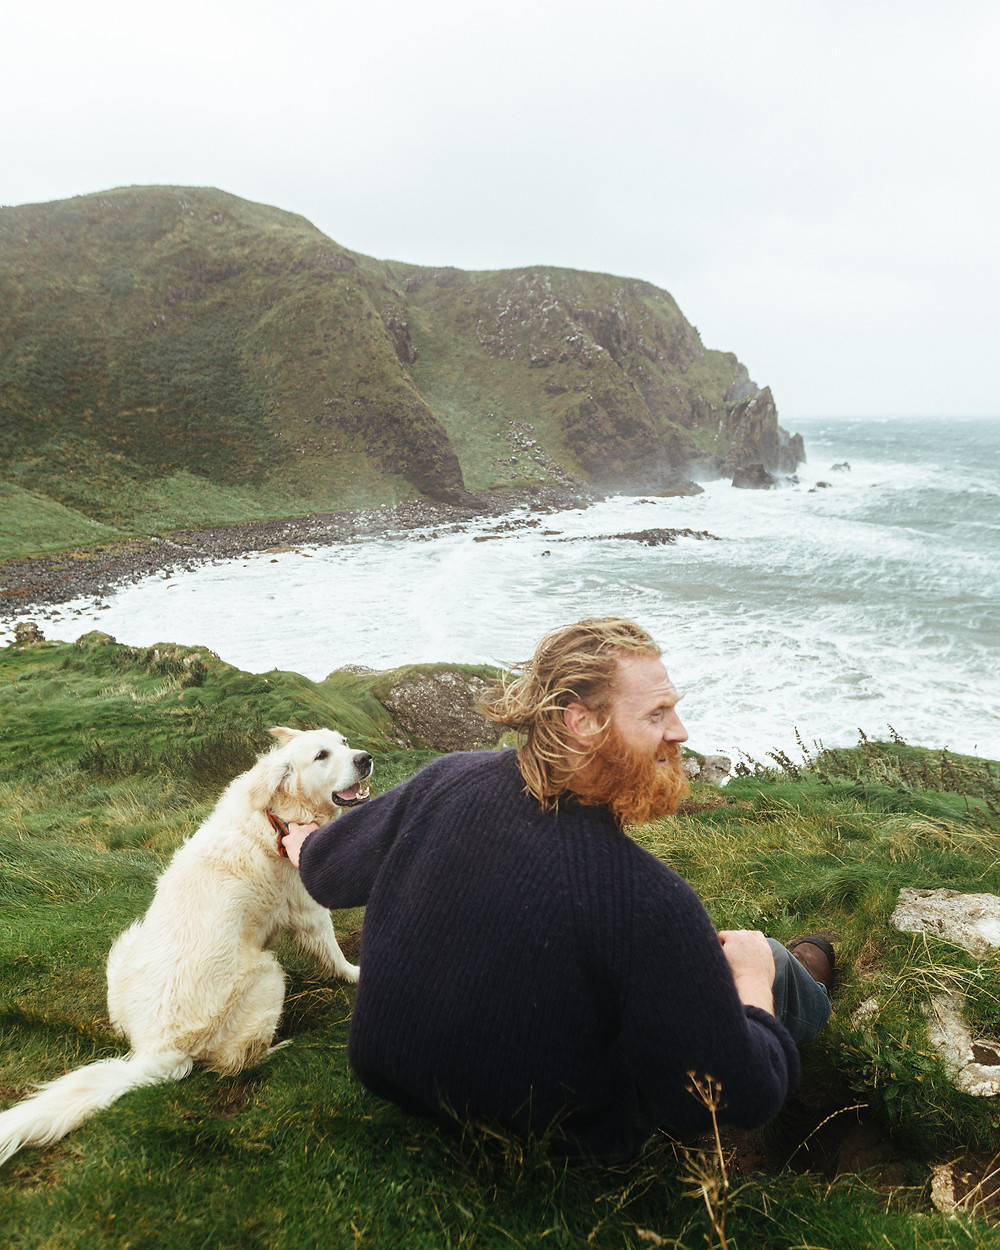 Al Mennie, surfer, ireland, kinbane head, irish, irish man, beard